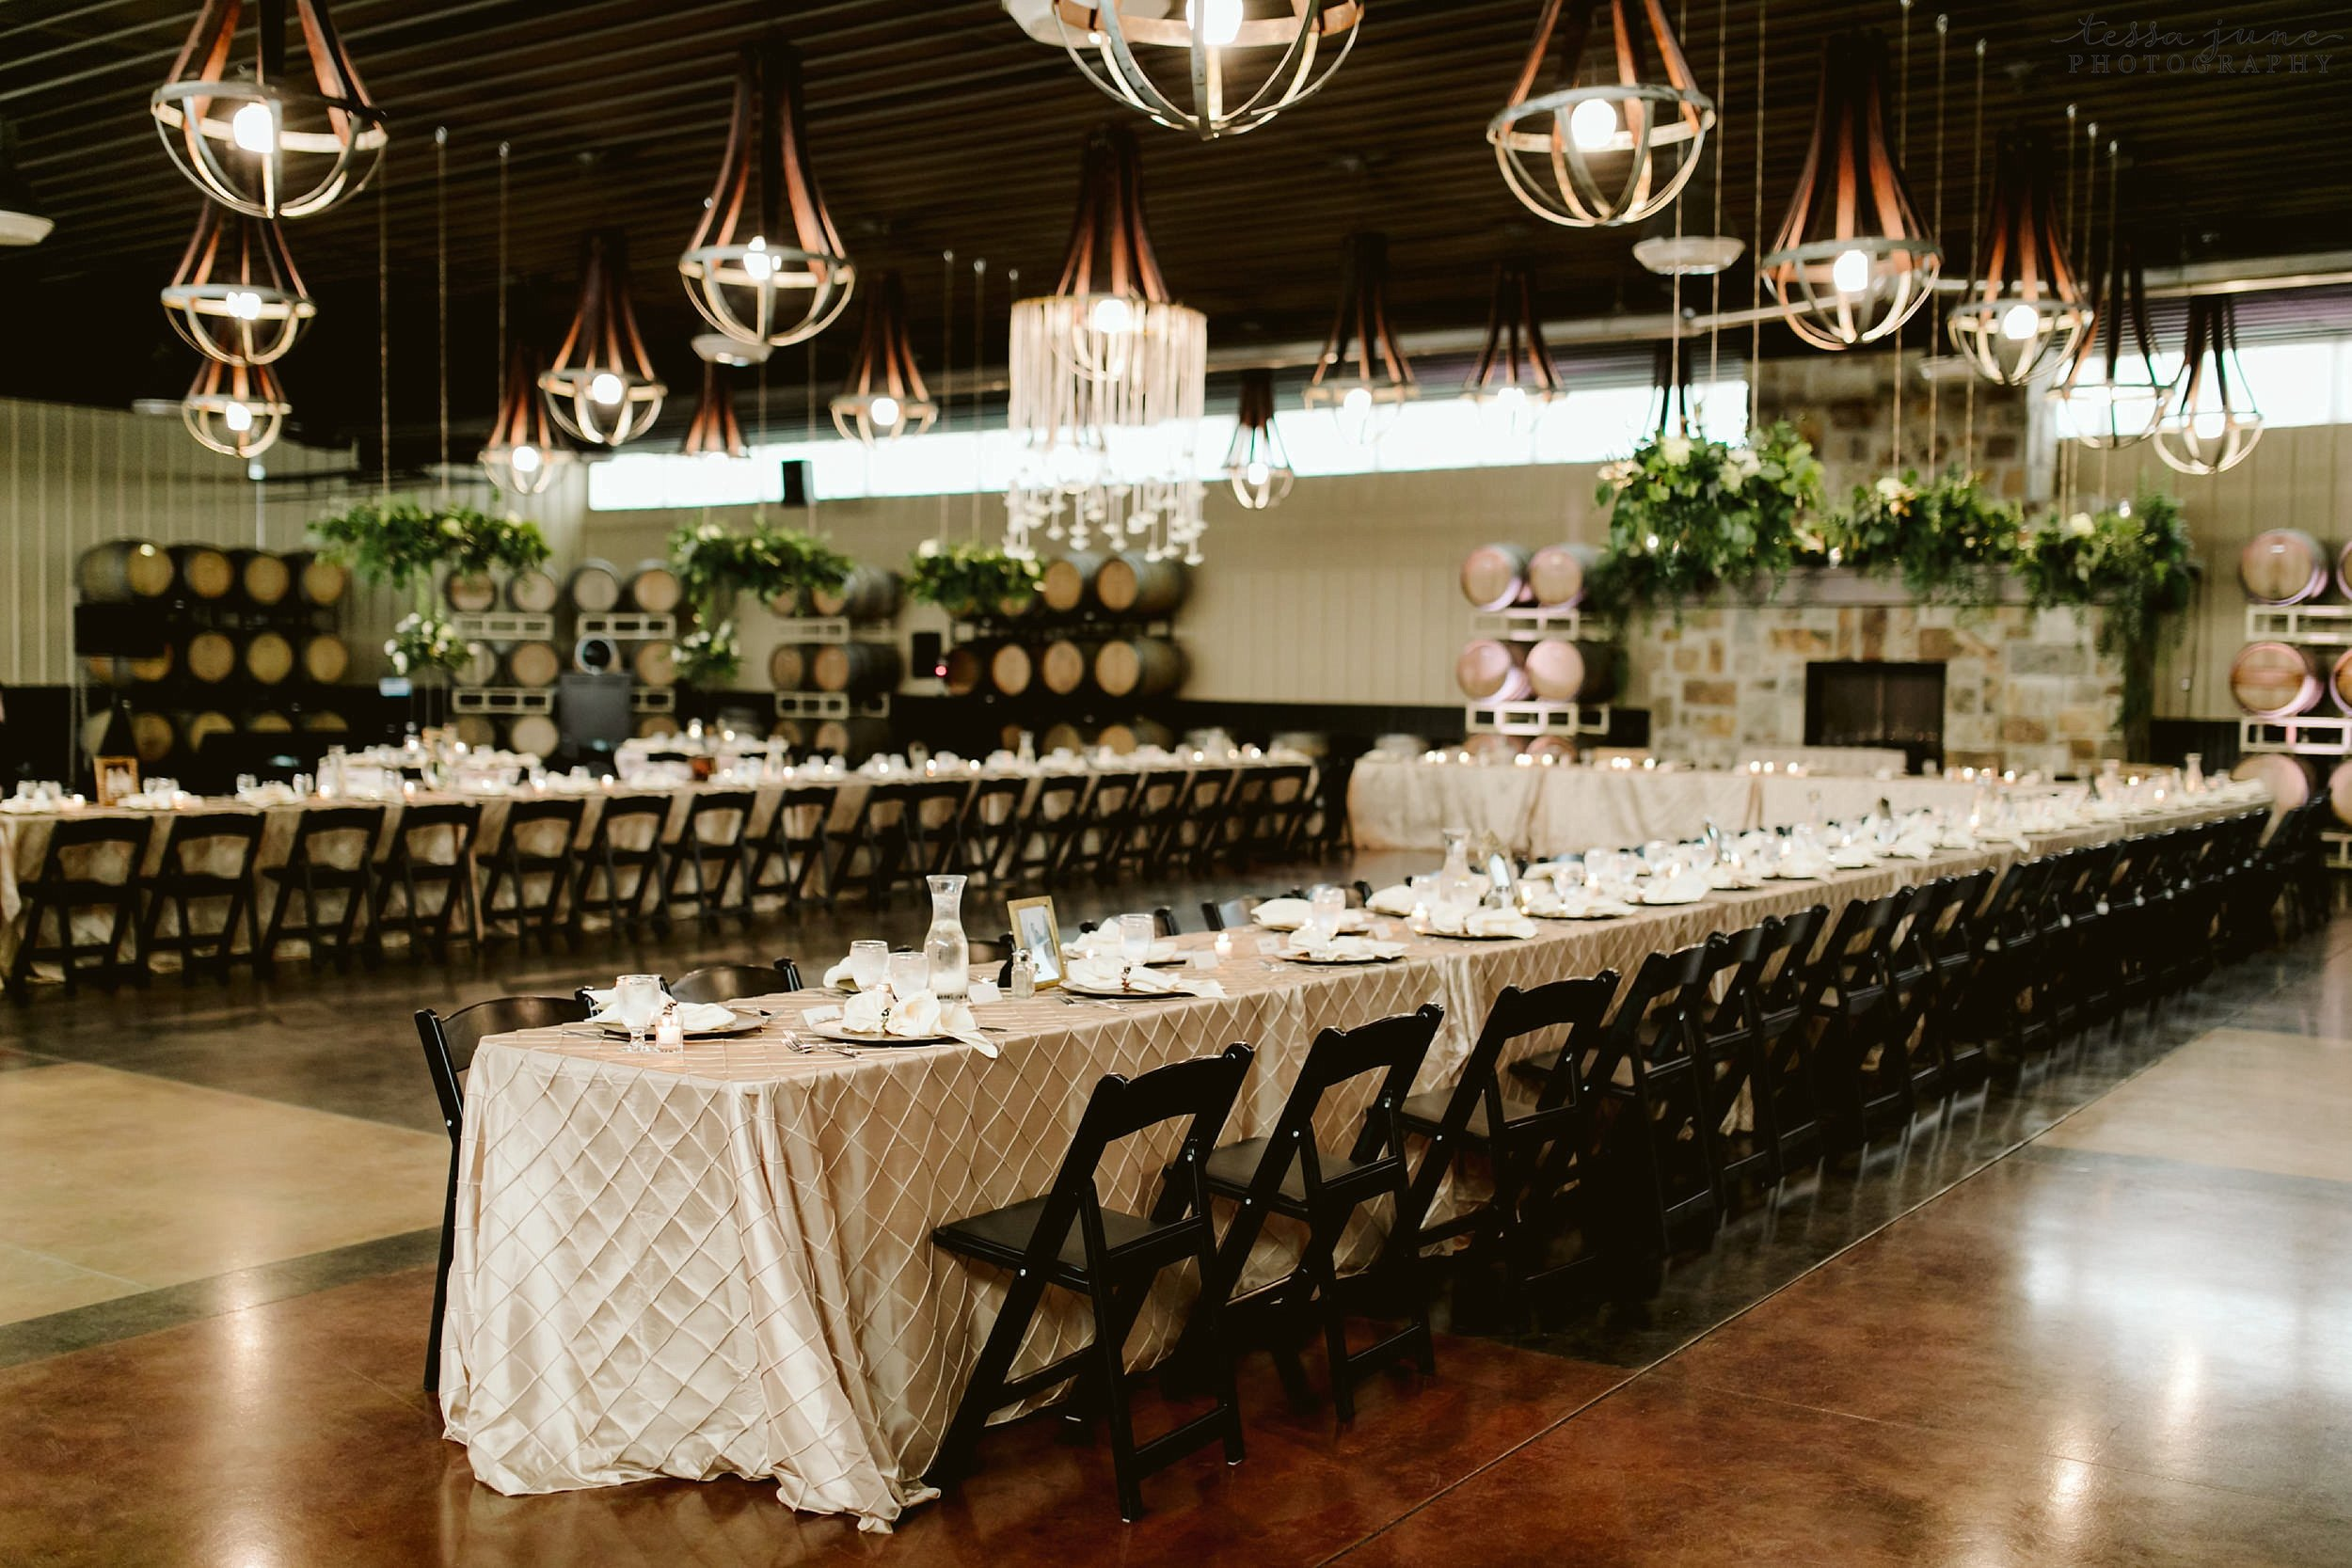 carlos-creek-winery-wedding-alexandria-minnesota-glam-elegant-floral-69.jpg